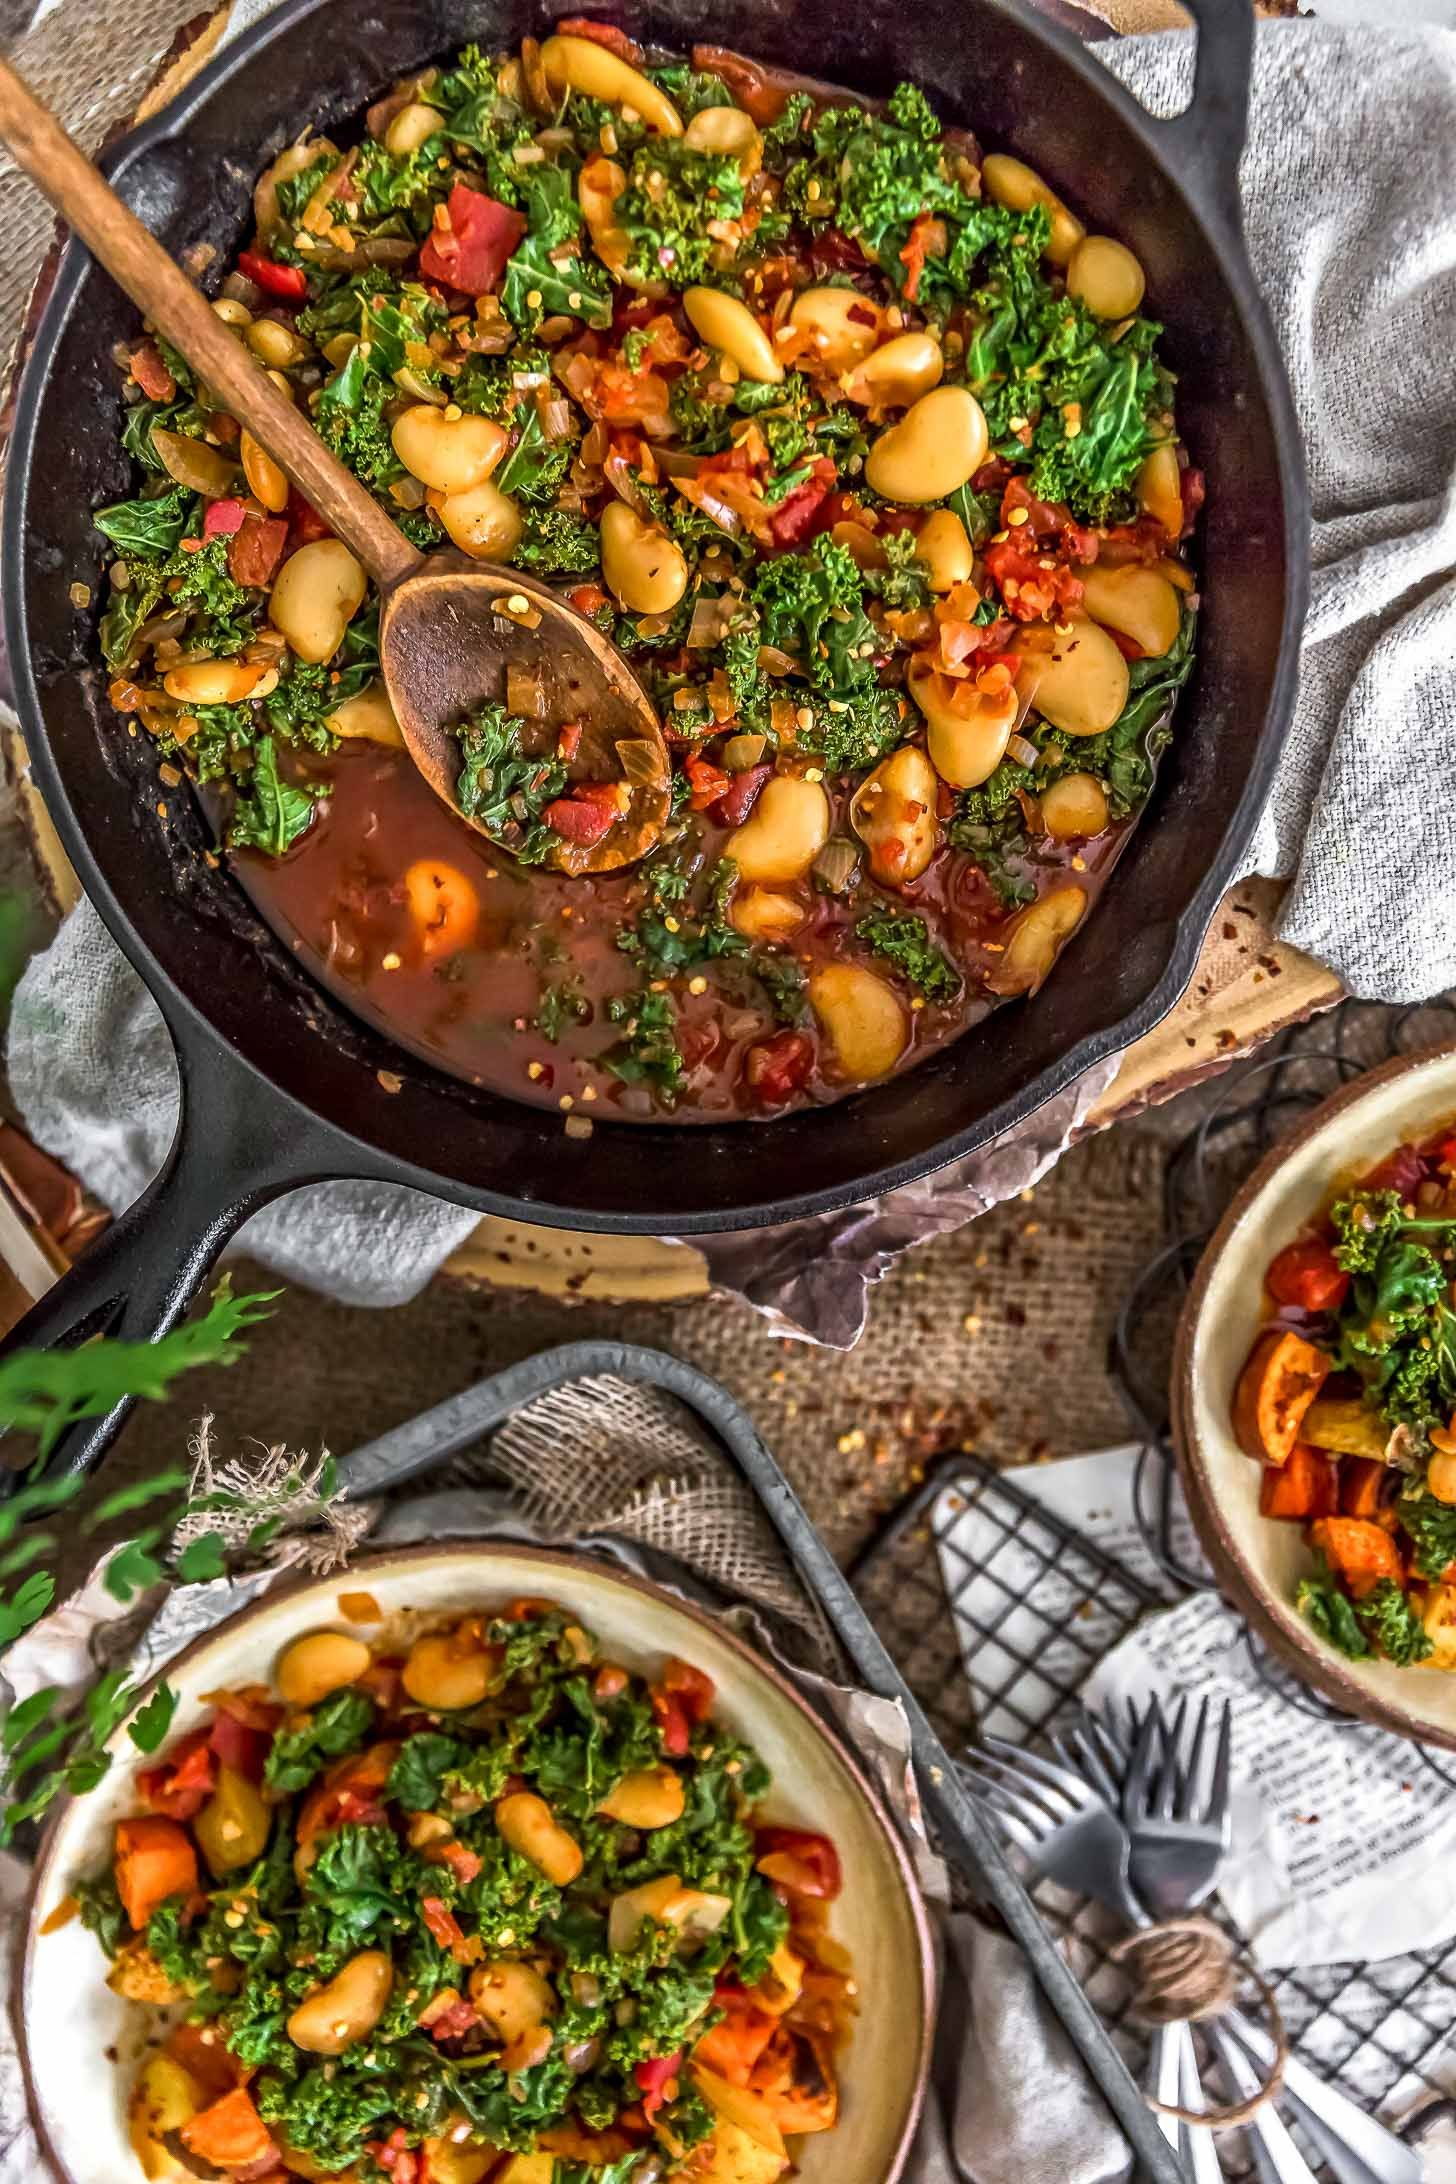 Southern Kale And Butter Beans